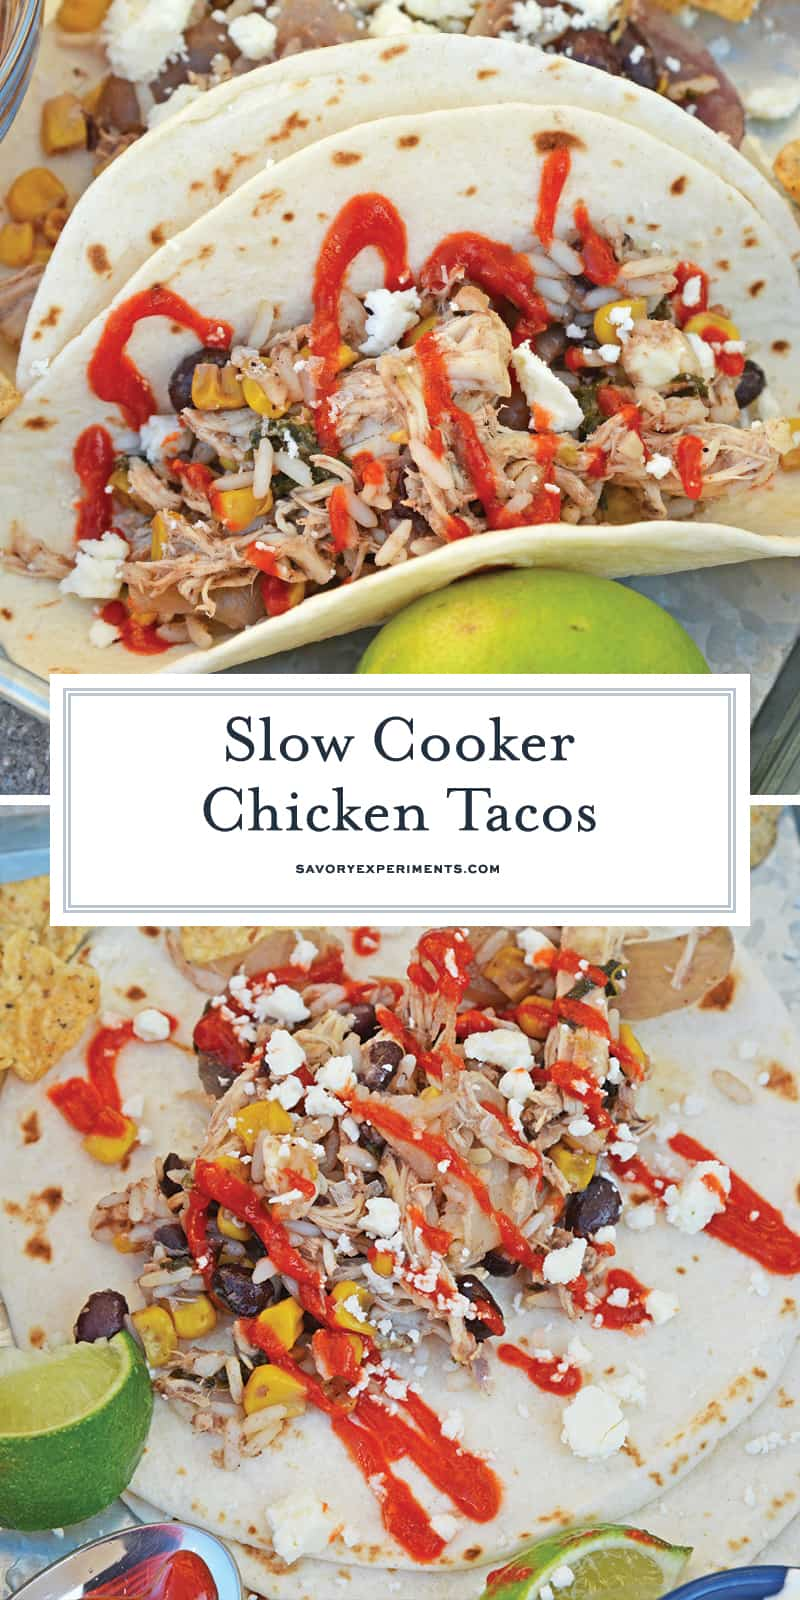 Slow Cooker Chicken Tacos only take 10 minutes to make in the crock pot! Just set it and forget it for a delicious dinner! #shreddedchickentacos #chickenstreettacos #softtacos www.savoryexperiments.com